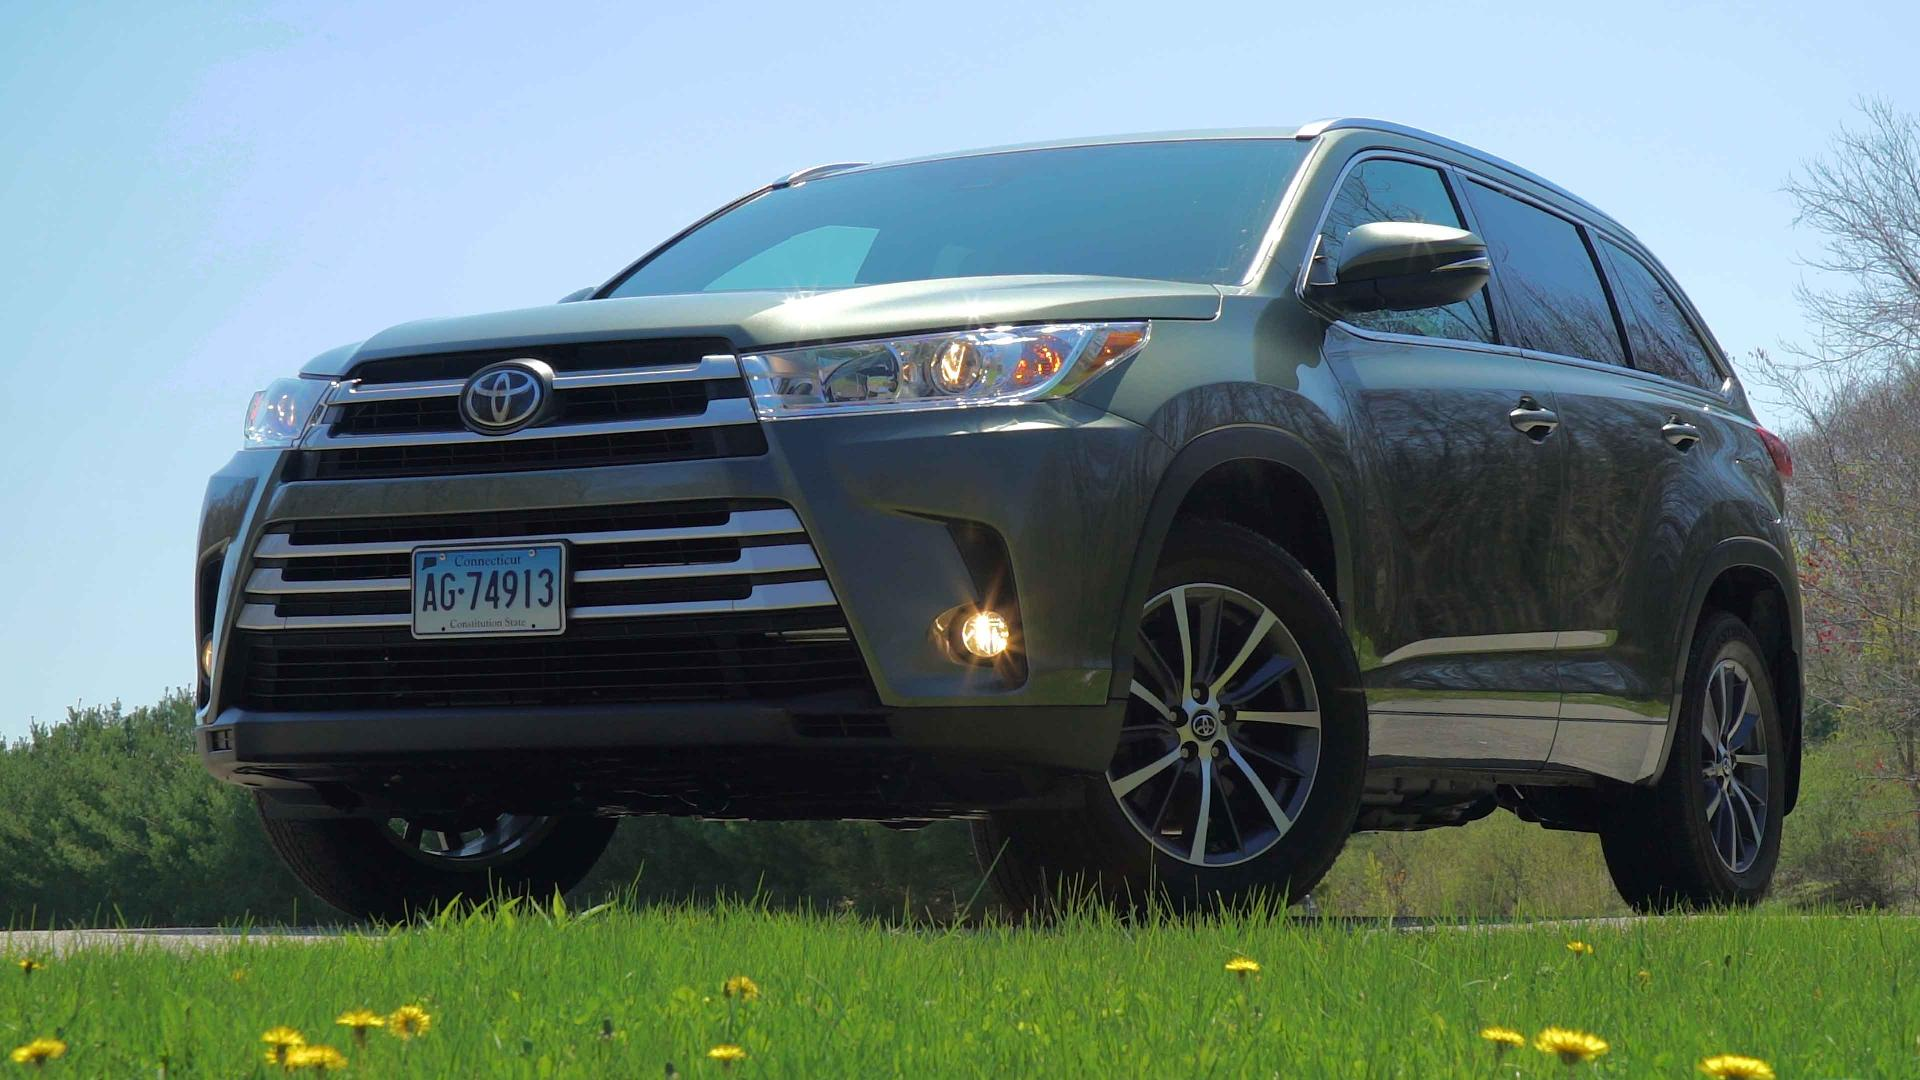 2018 Toyota Highlander Reviews Ratings Prices Consumer Reports